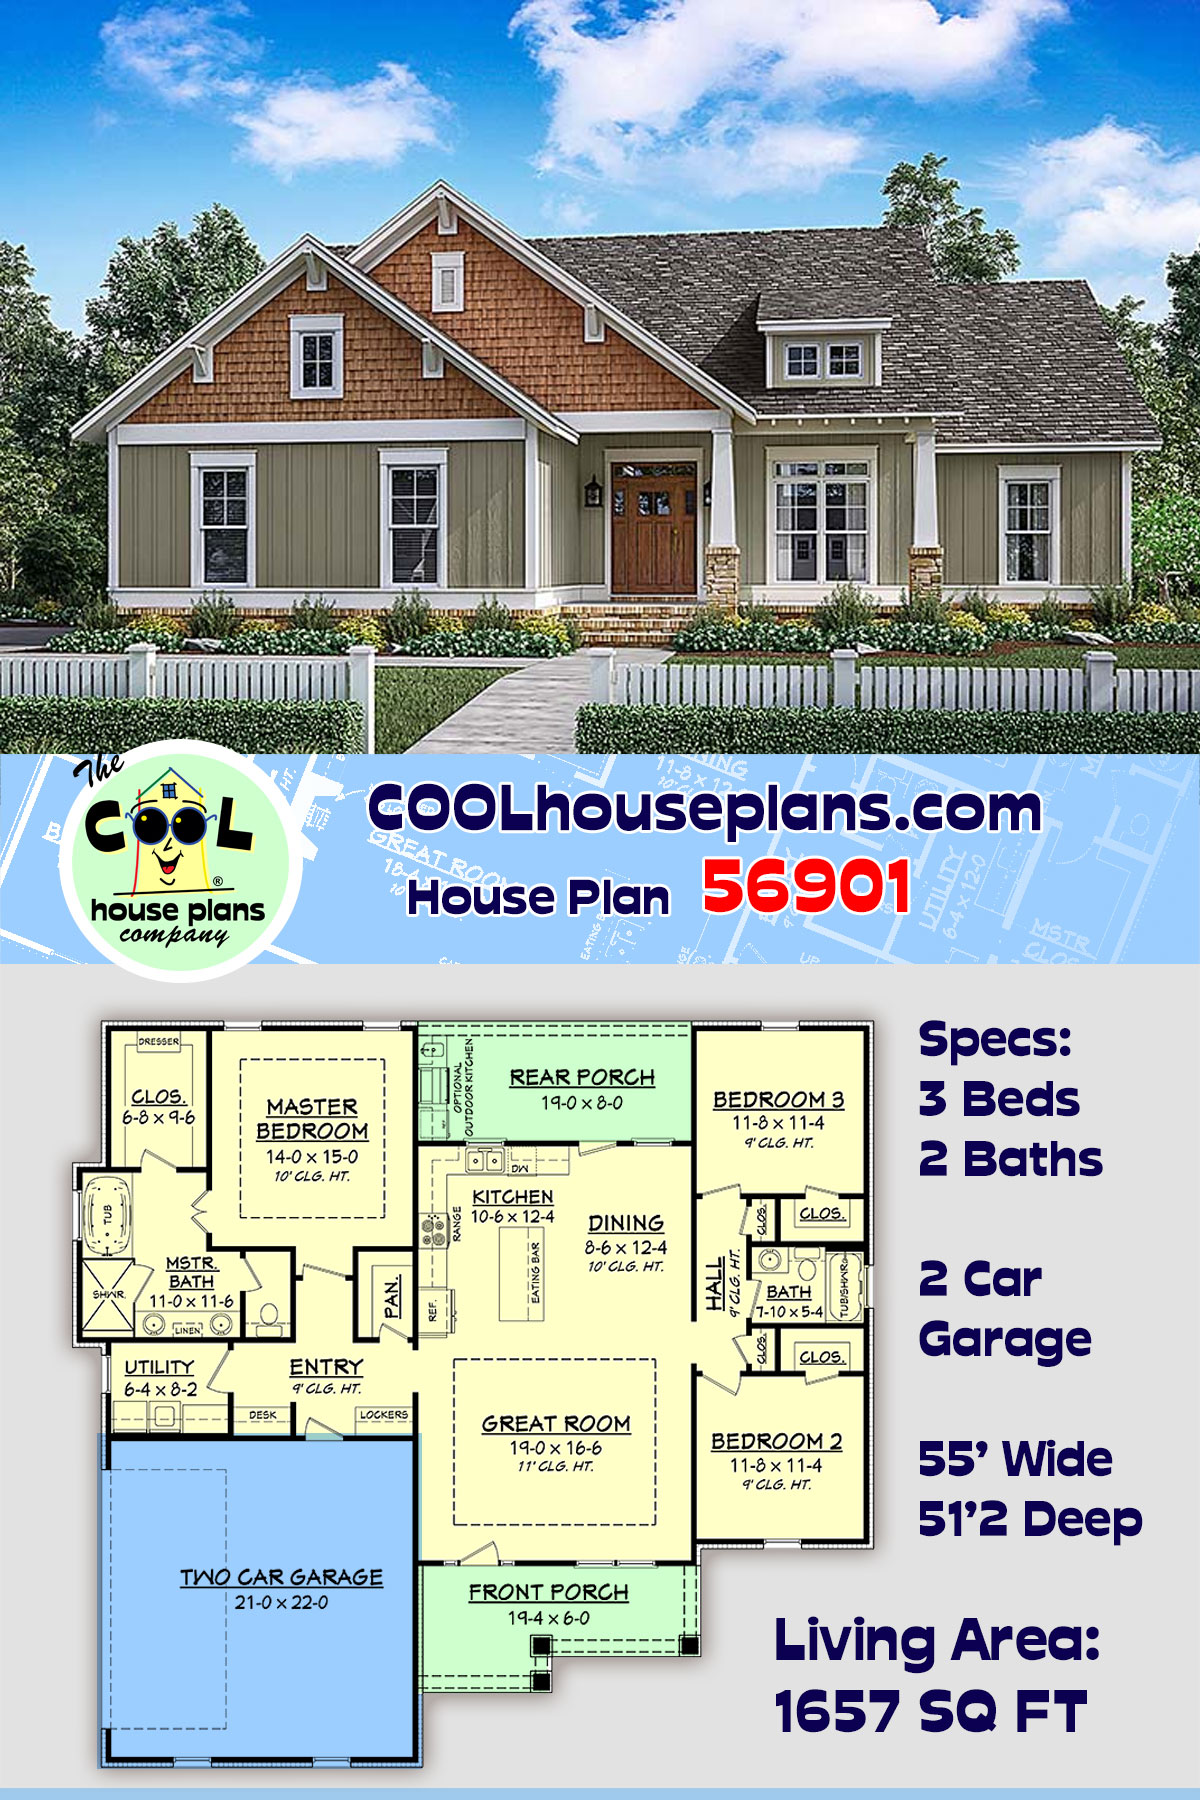 Cottage, Country, Craftsman, Traditional House Plan 56901 with 3 Beds, 2 Baths, 2 Car Garage